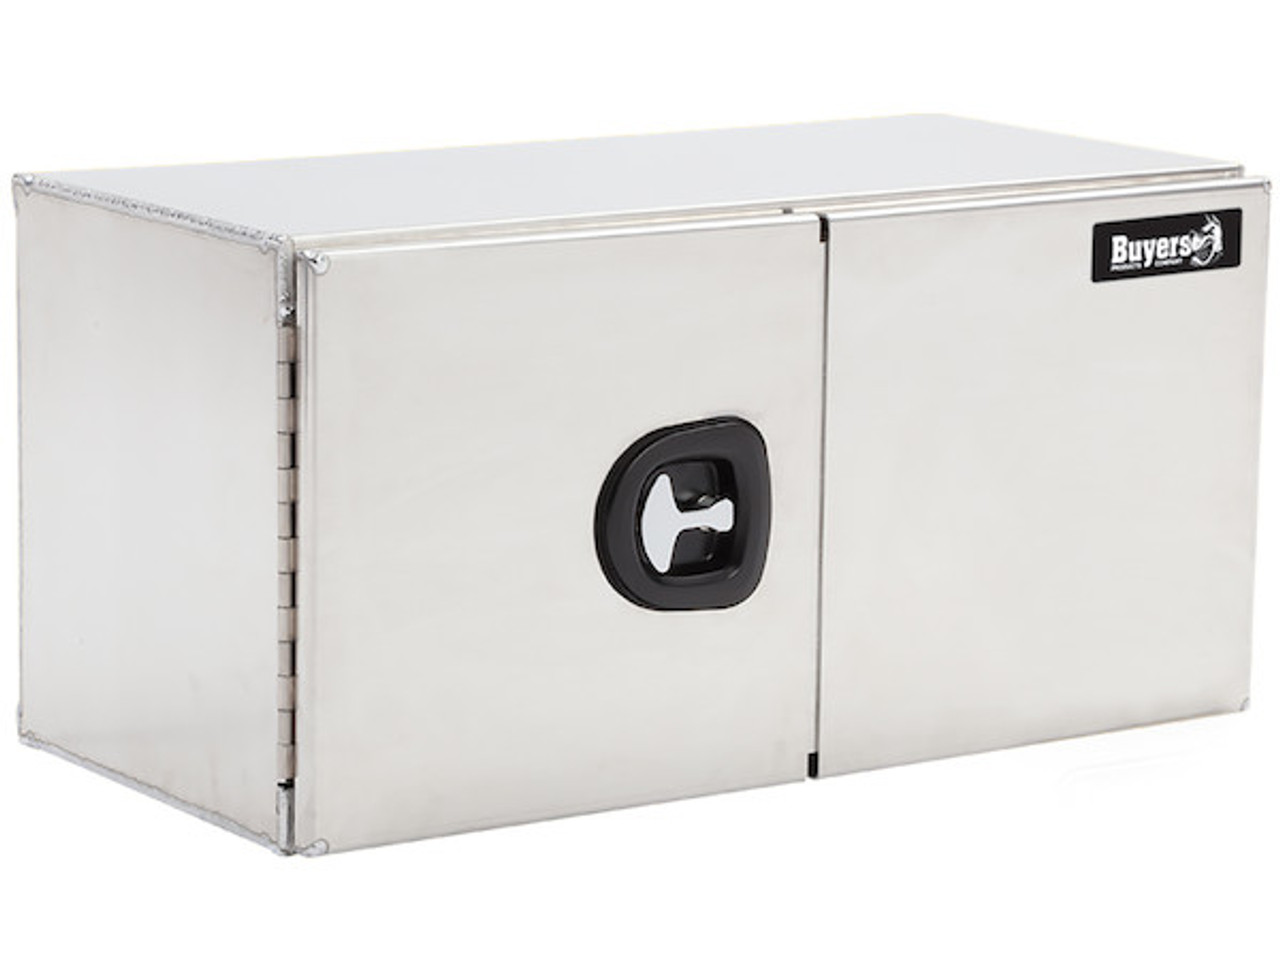 1705340 BUYERS PRODUCTS SMOOTH ALUMINUM UNDERBODY TOOLBOX WITH BARN DOOR